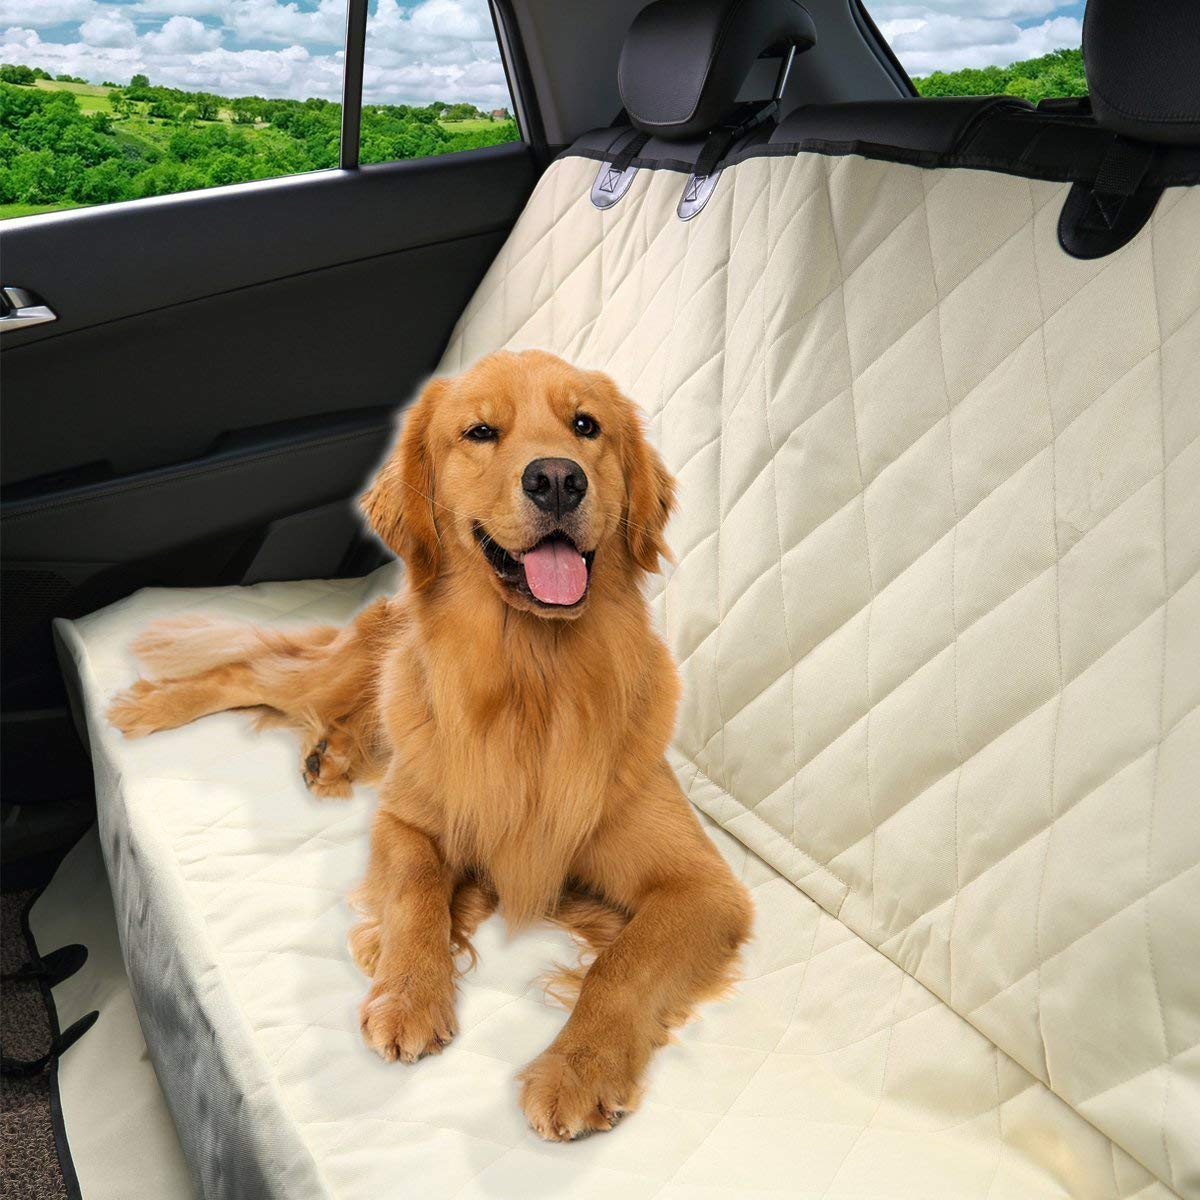 2019 Luxury Pet Car Seat Cover Waterproof & Scratch Proof & Nonslip Backing & Hammock Style & Heavy Duty Back Seat Predector for Cars Trucks and SUVs